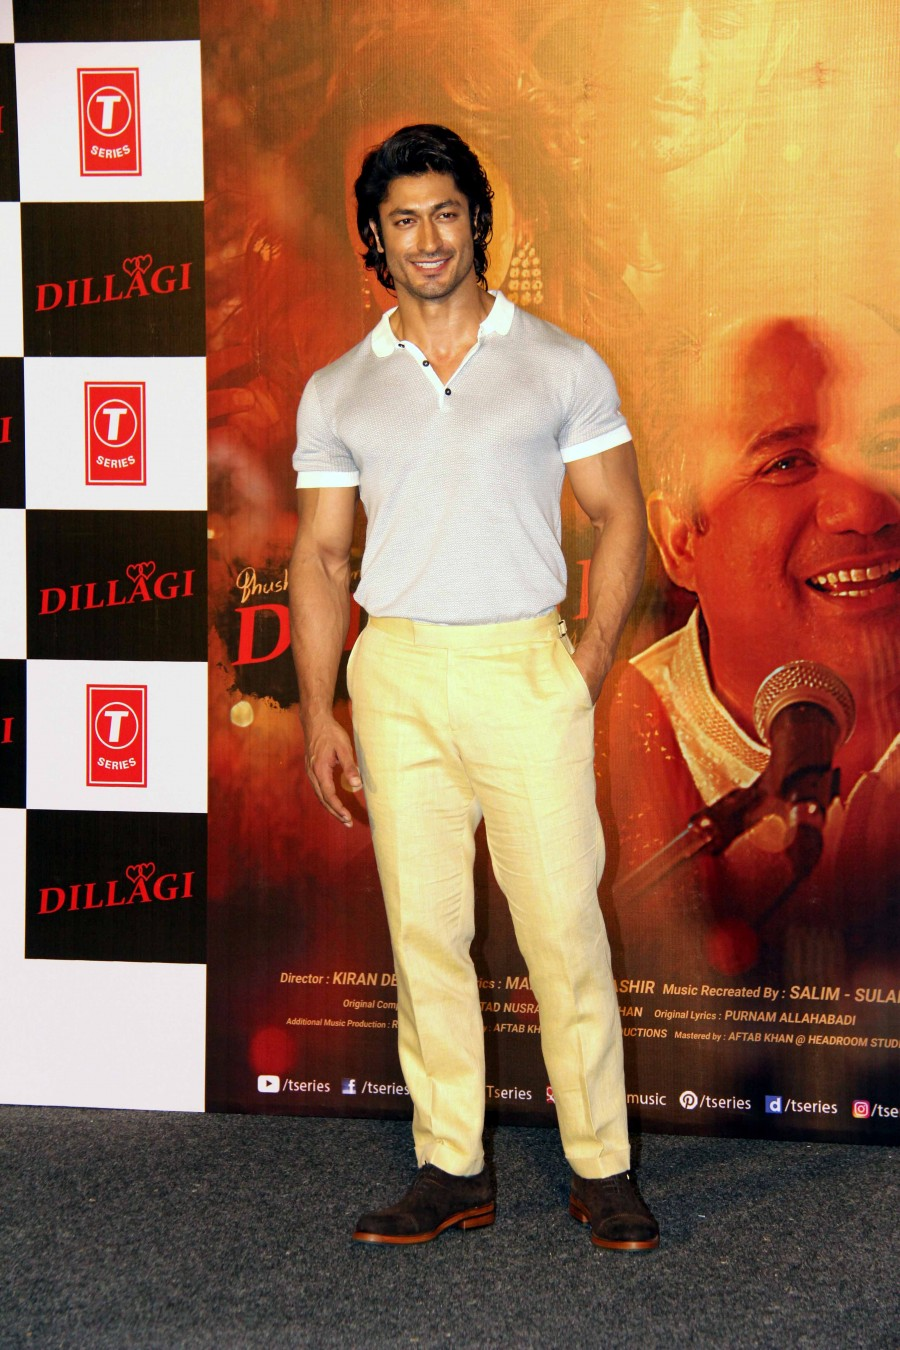 Dillagi Song launch,Dillagi music launch,Dillagi,Vidyut Jammwal,Huma Qureshi,Rahat Fateh Ali Khan,Dillagi song launch pics,Dillagi song launch images,Dillagi song launch photos,Dillagi song launch stills,Dillagi song launch pictures